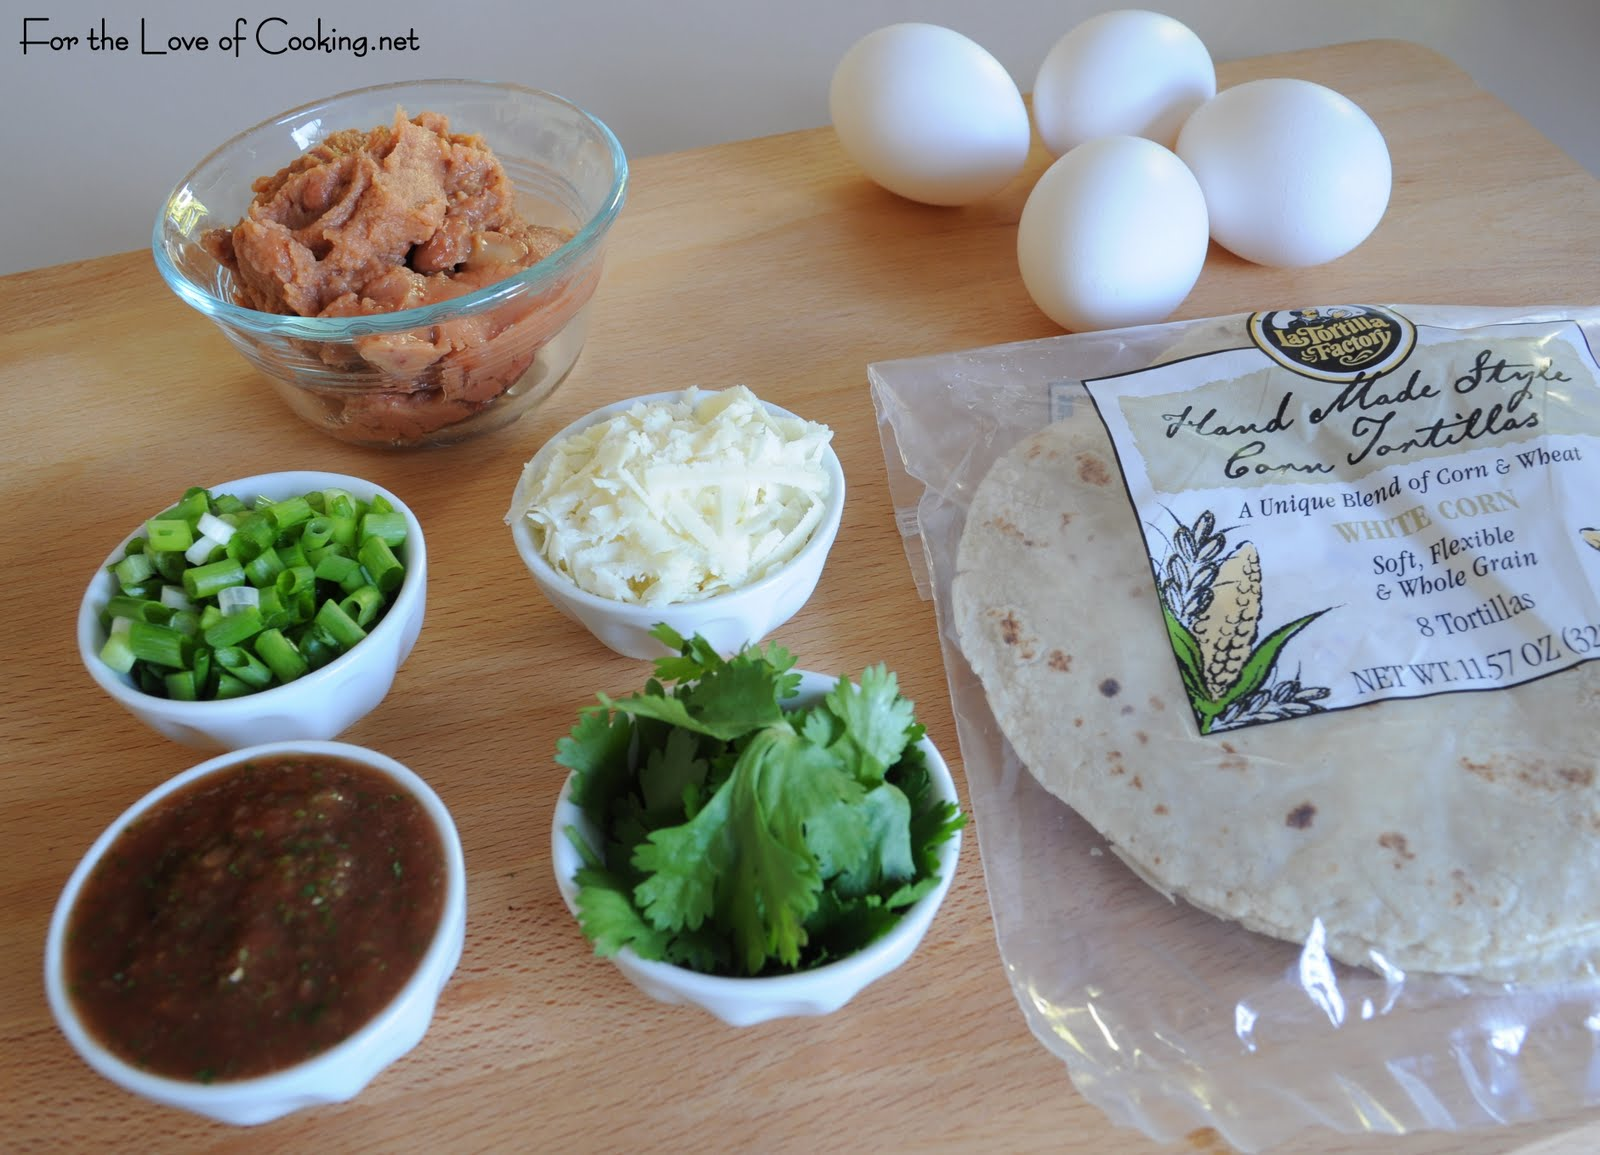 Eggs Barbacoa | For the Love of Cooking